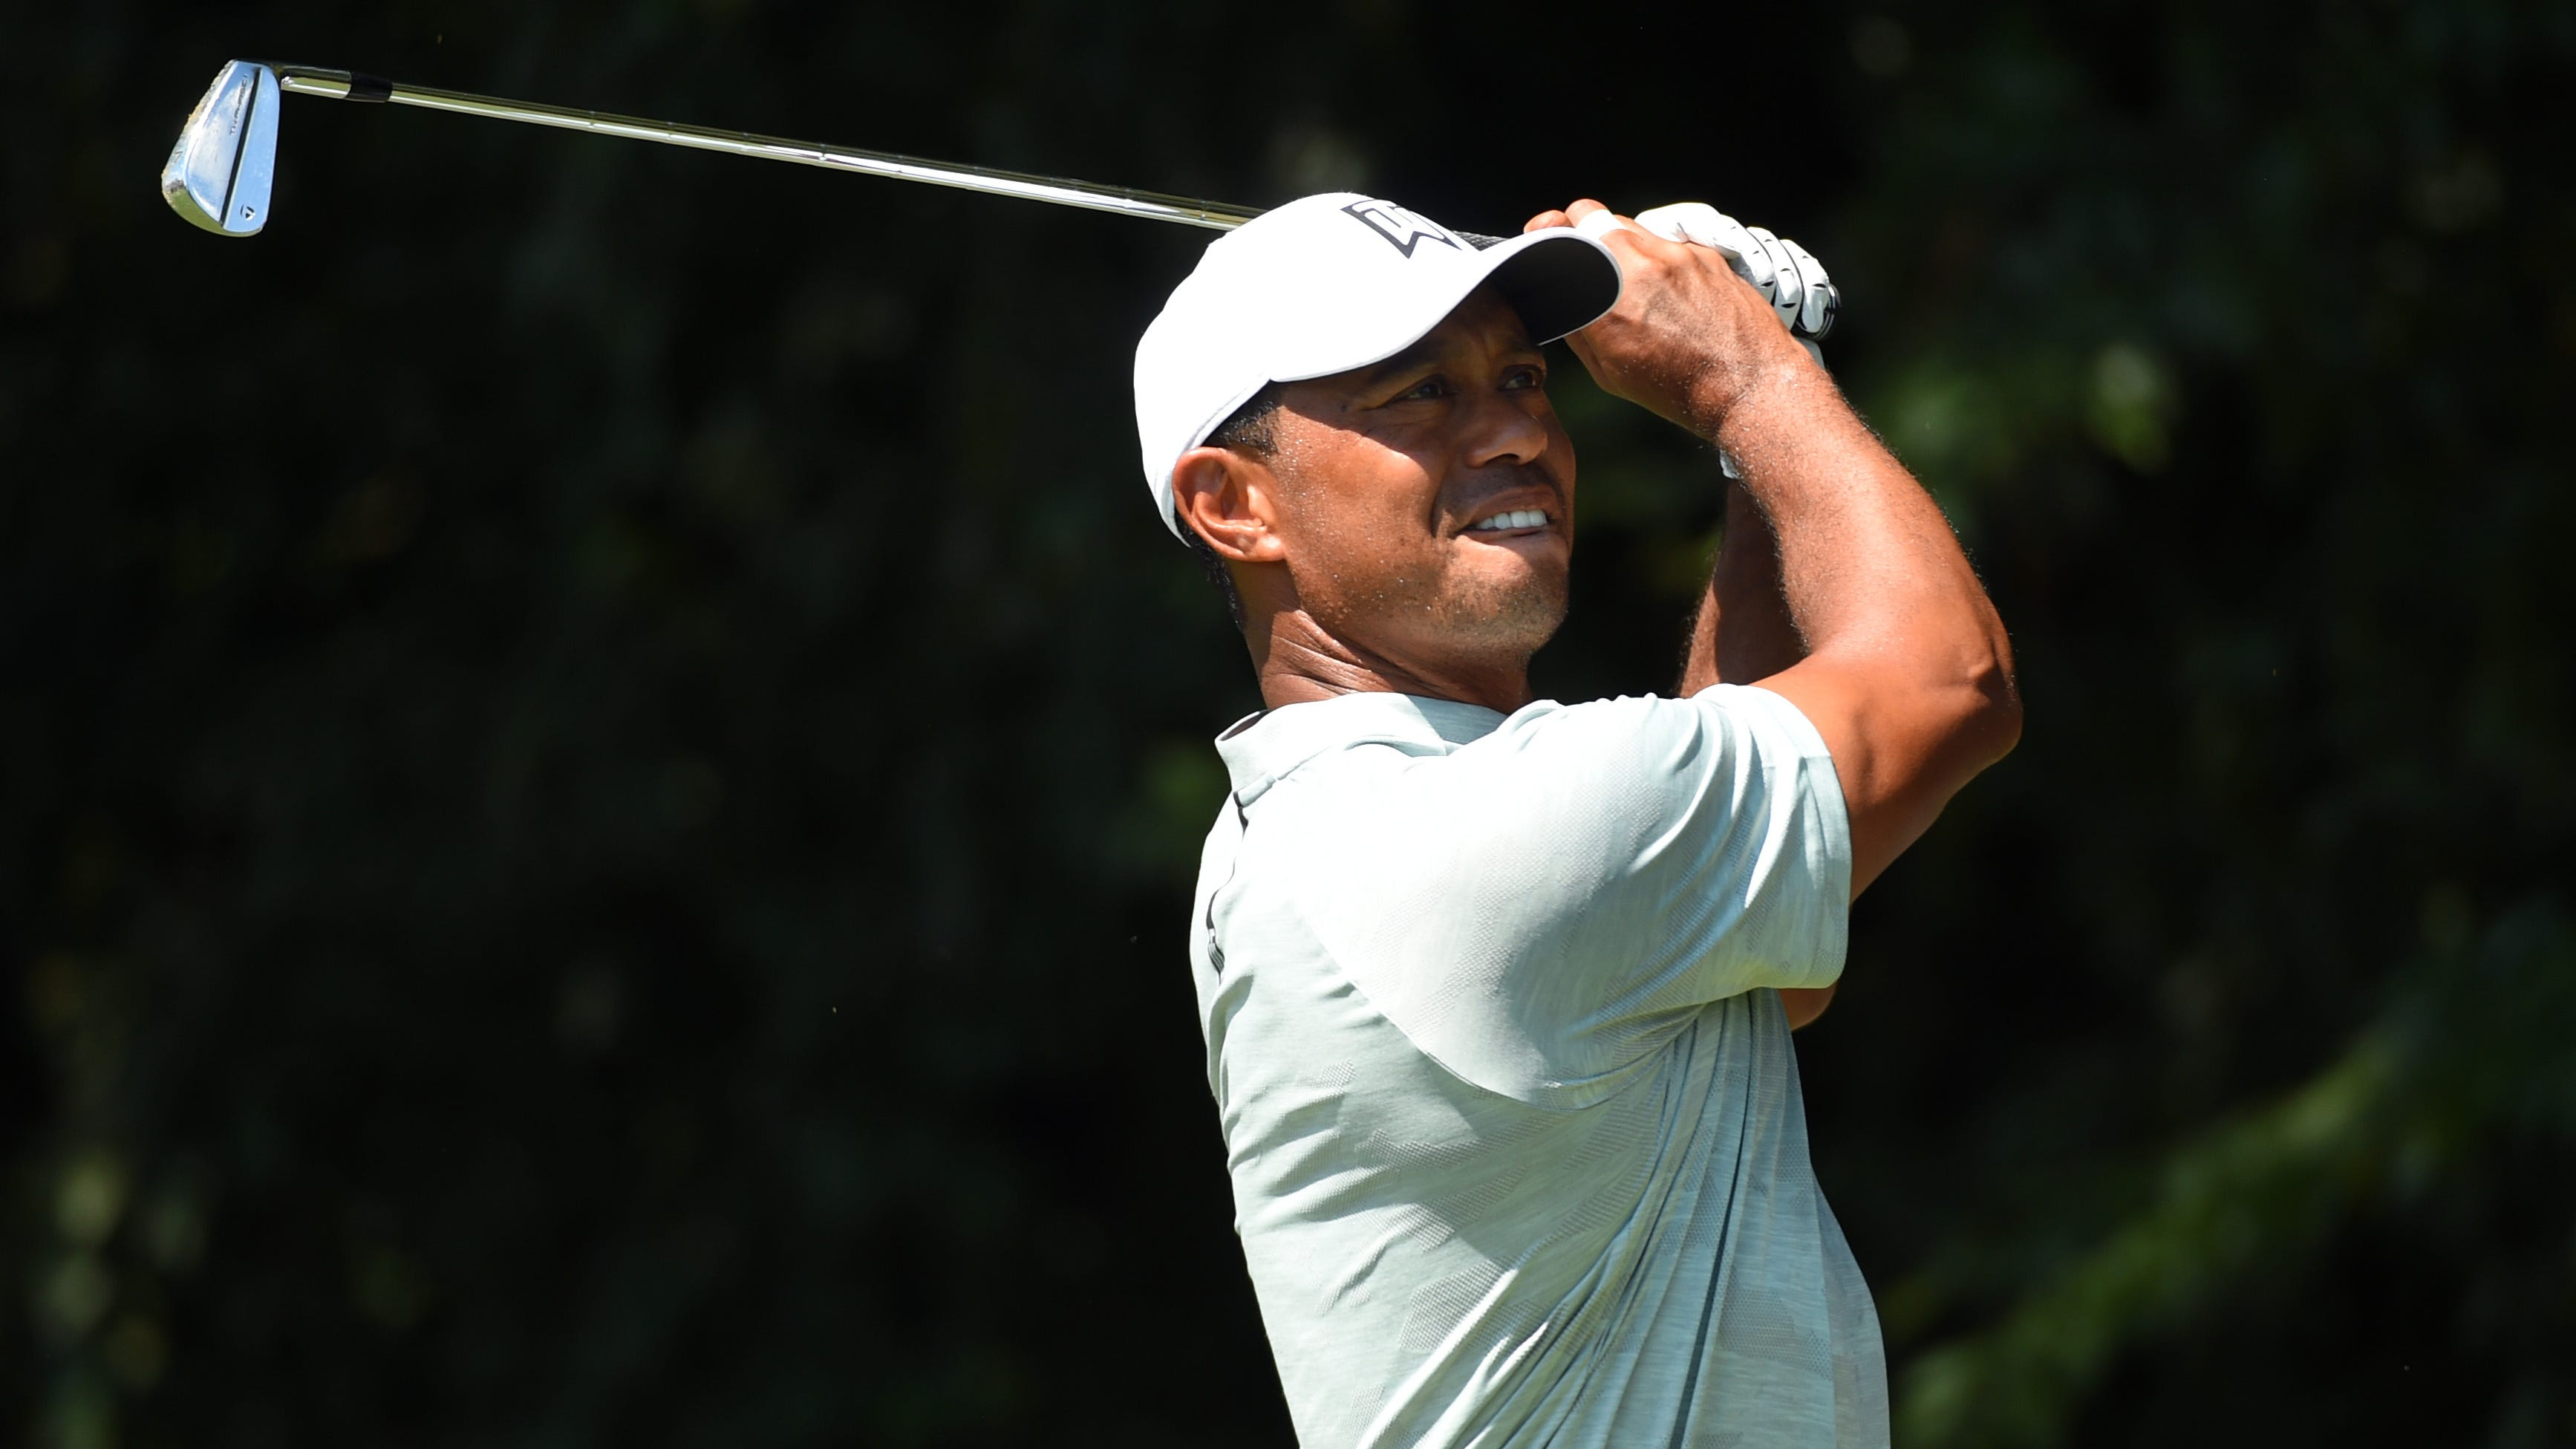 Tiger Woods tees off on the second hole during the second round of the Tour Championship golf tournament at East Lake Golf Club.